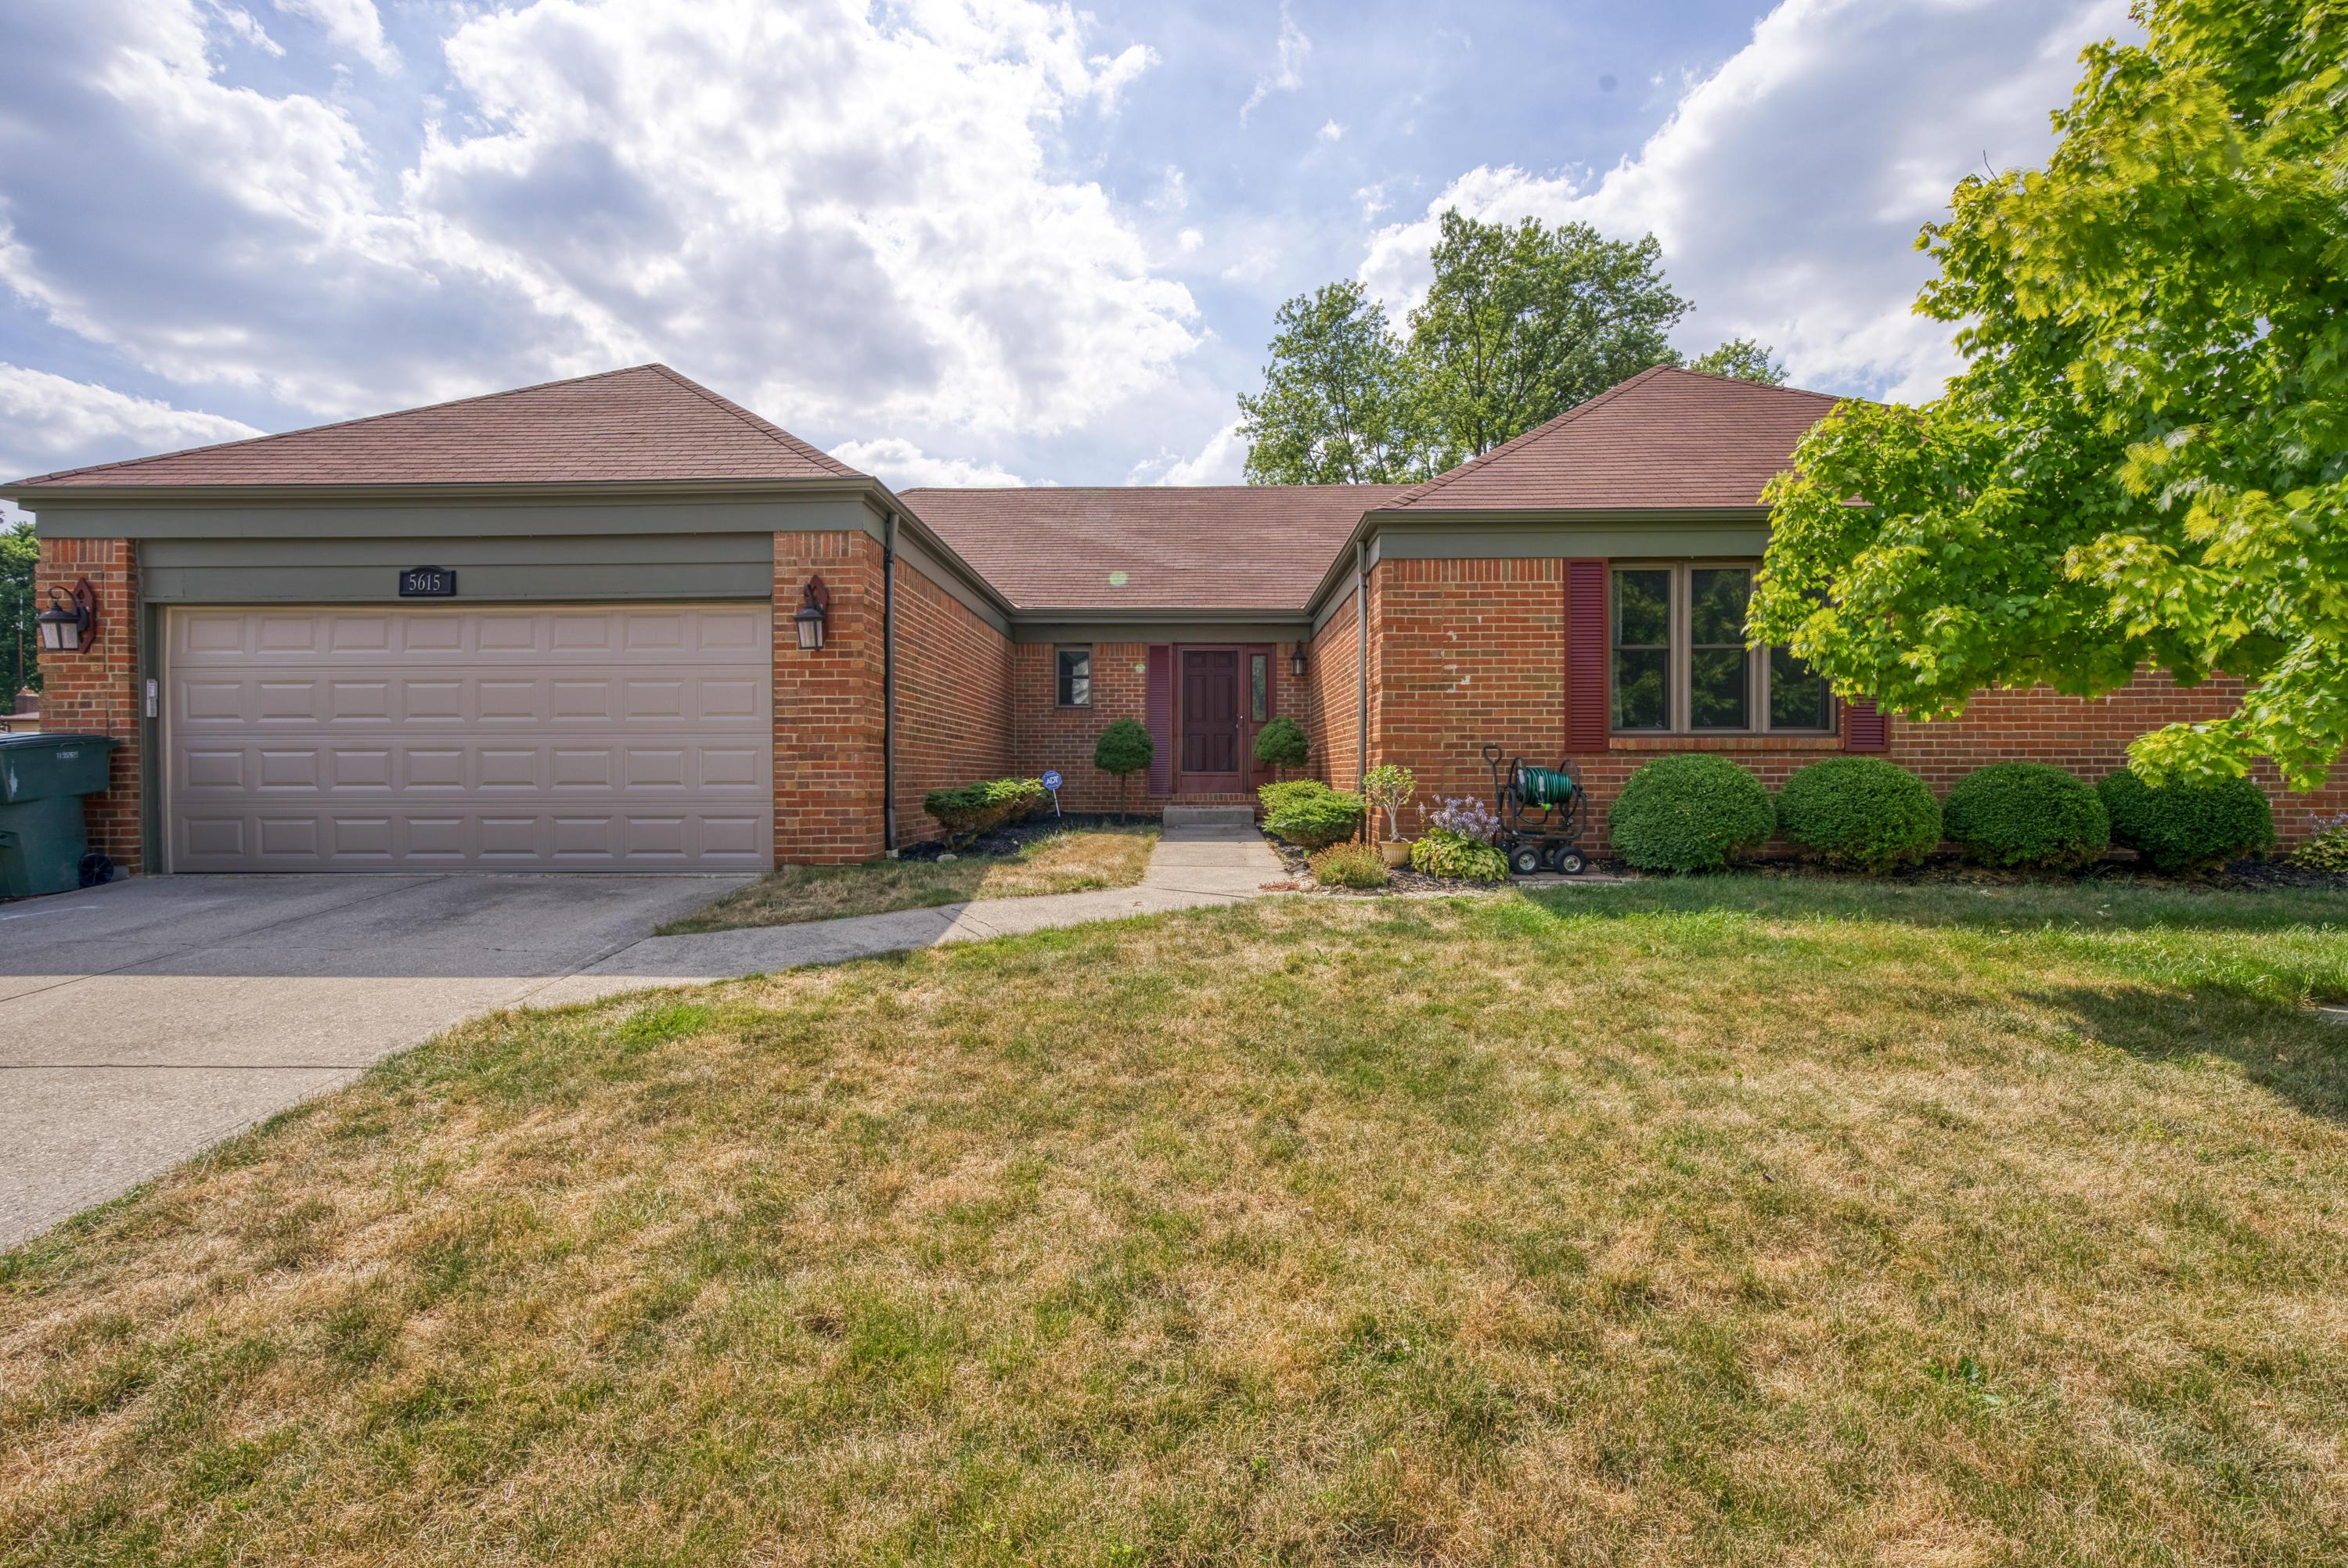 5615 Orchid Place, Columbus, Ohio 43235, 3 Bedrooms Bedrooms, ,2 BathroomsBathrooms,Residential,For Sale,Orchid,220023436